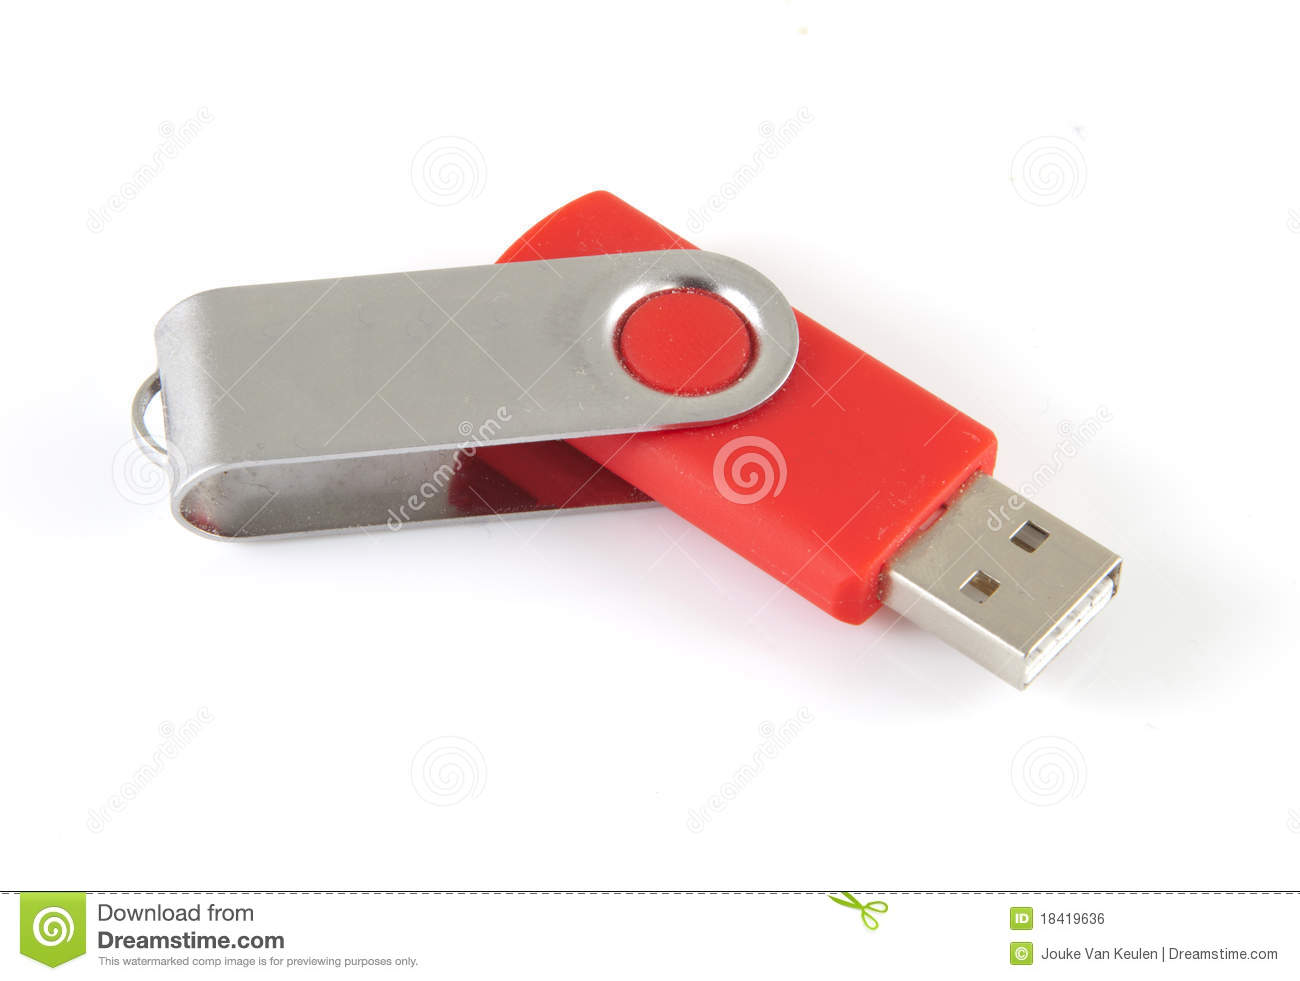 Red Usb Stick Royalty Free Stock Image Image 18419636